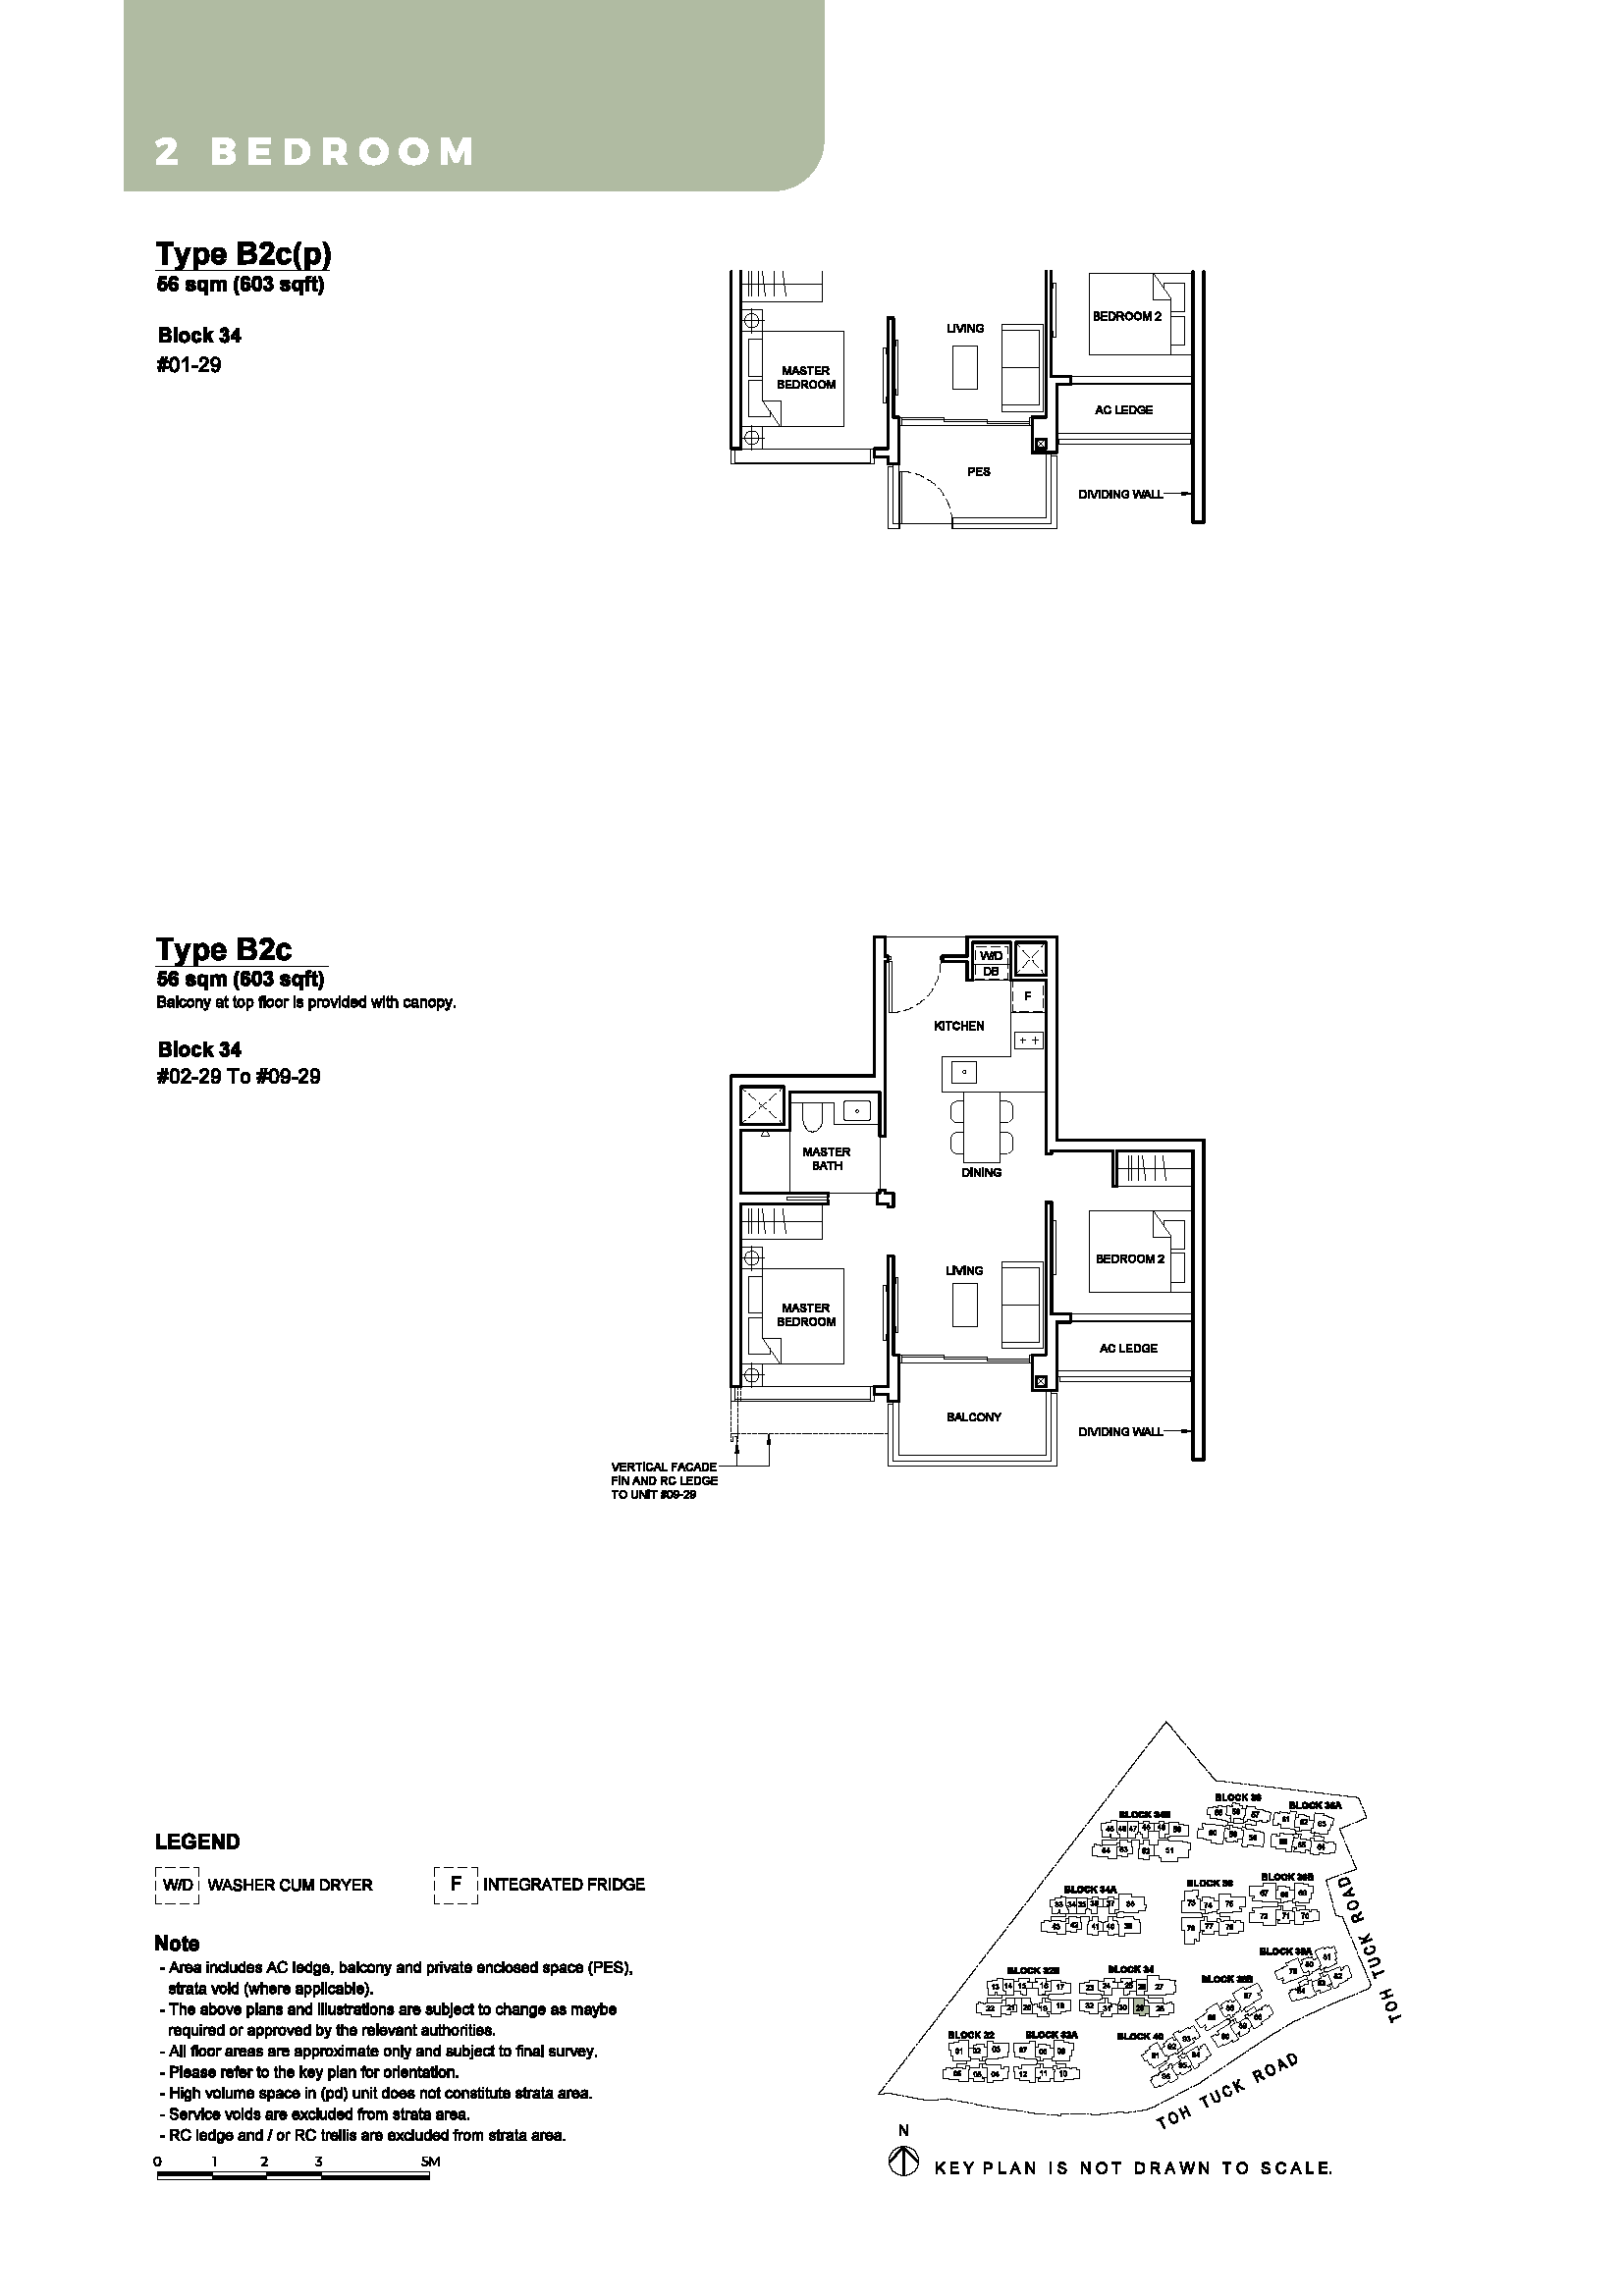 2 Bedroom - Type B2c - B2c(p)